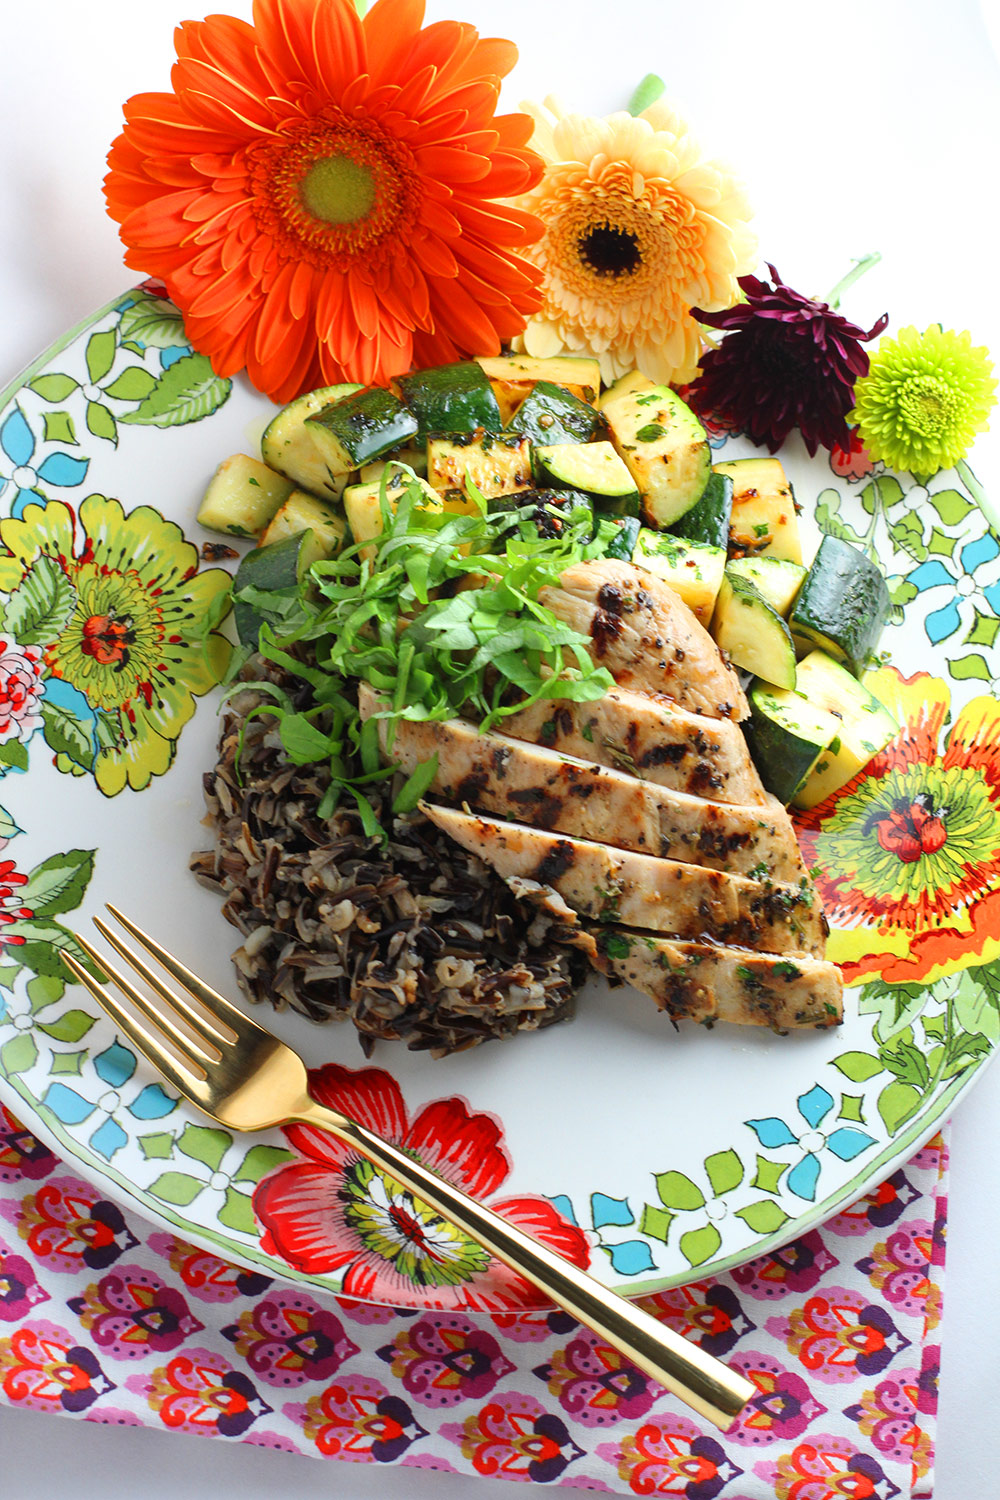 Copy of Chicken Paillard with Wild Rice